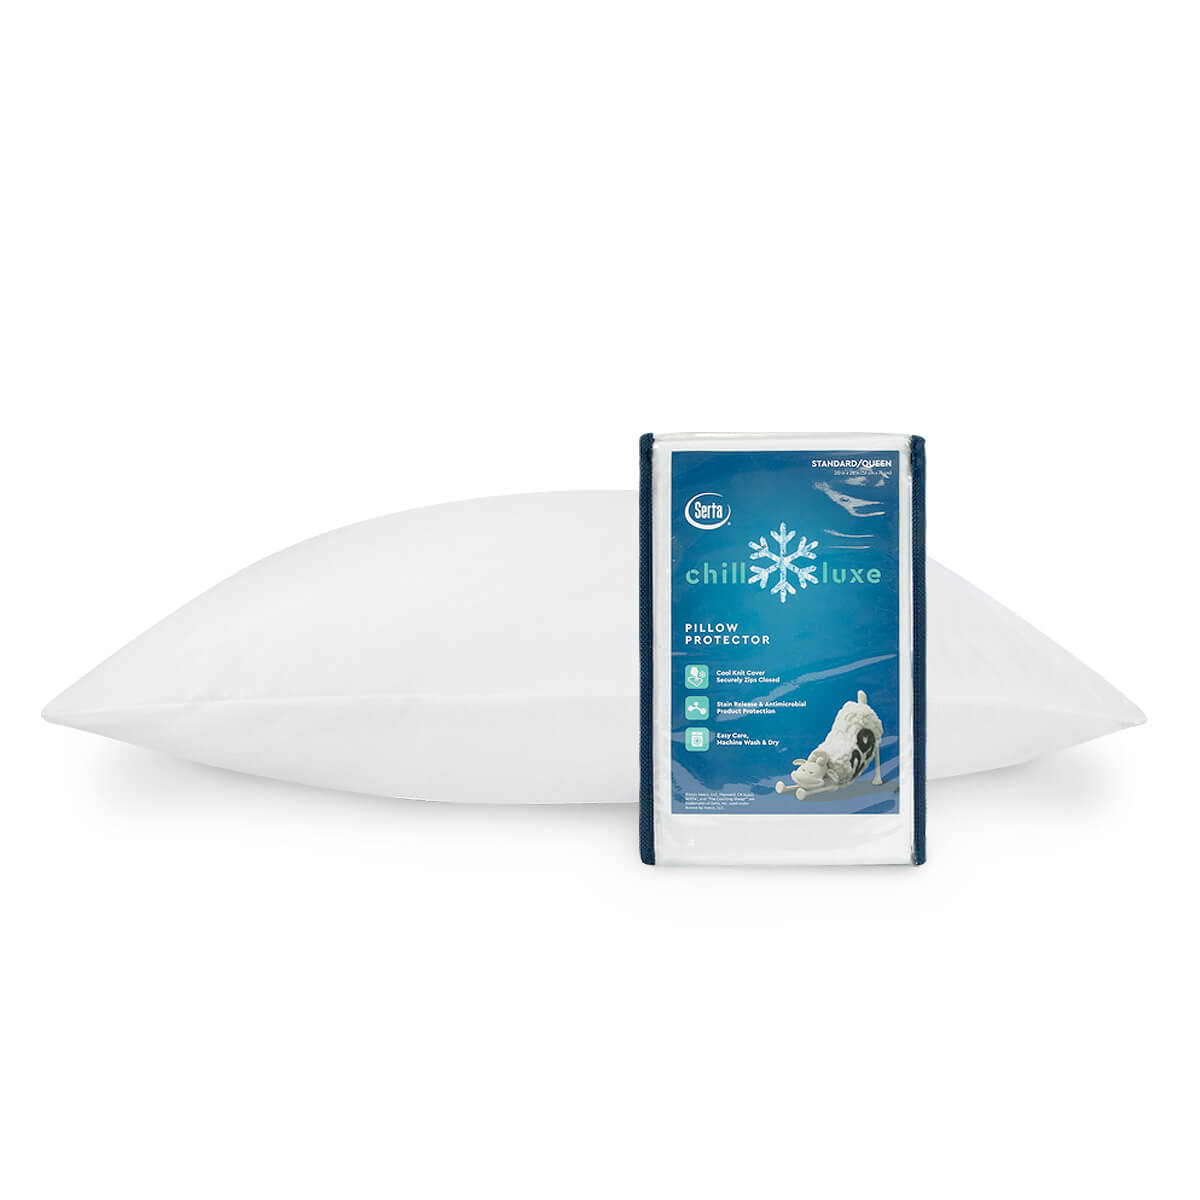 Serta Chill Luxe Pillow Protector - pillow on bed